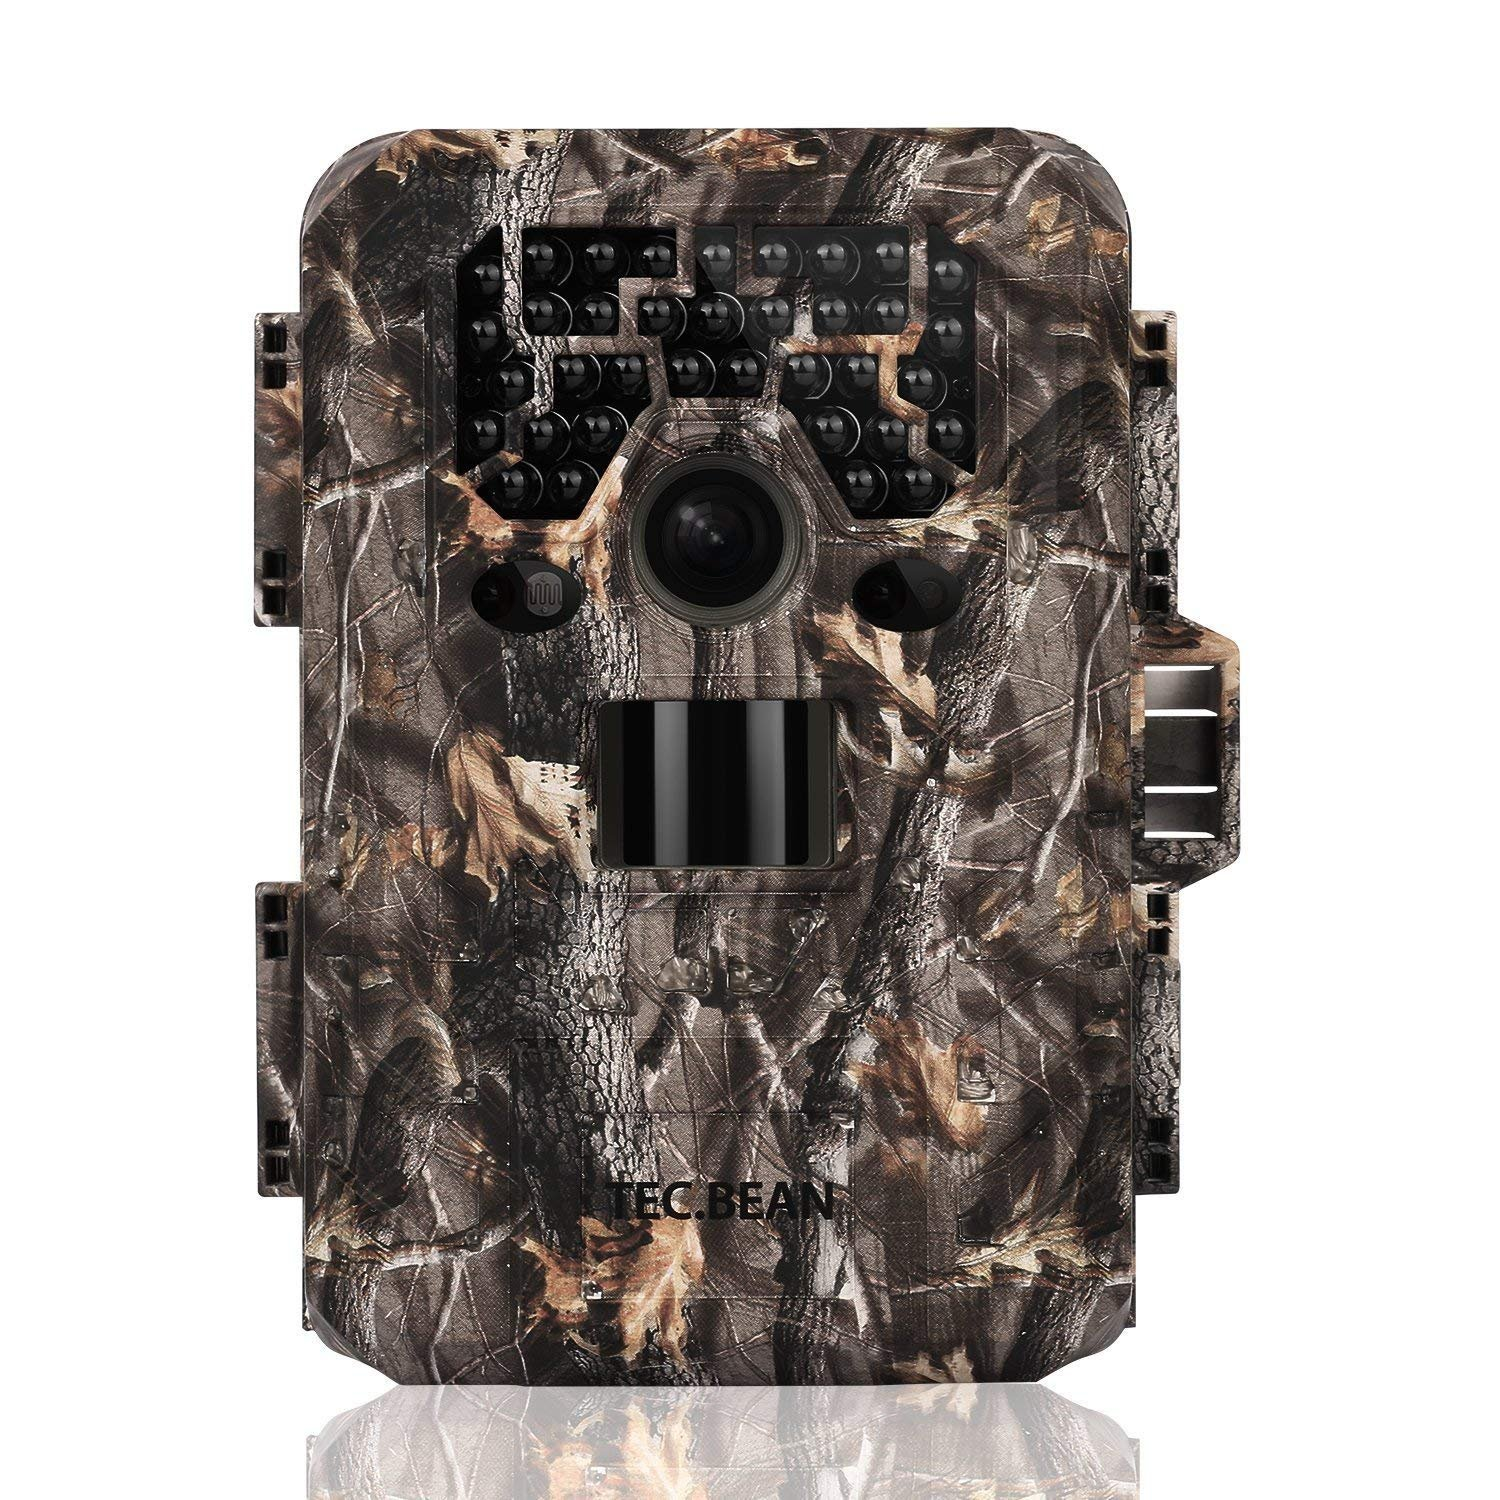 TEC.BEAN Trail Camera 12MP 1080P Full HD Game Hunting Camera with 36pcs 940nm IR LEDs Night Vision up to 75ft 23m IP66 Waterproof 0.6s Trigger Speed for Wildlife Observation and Home Security